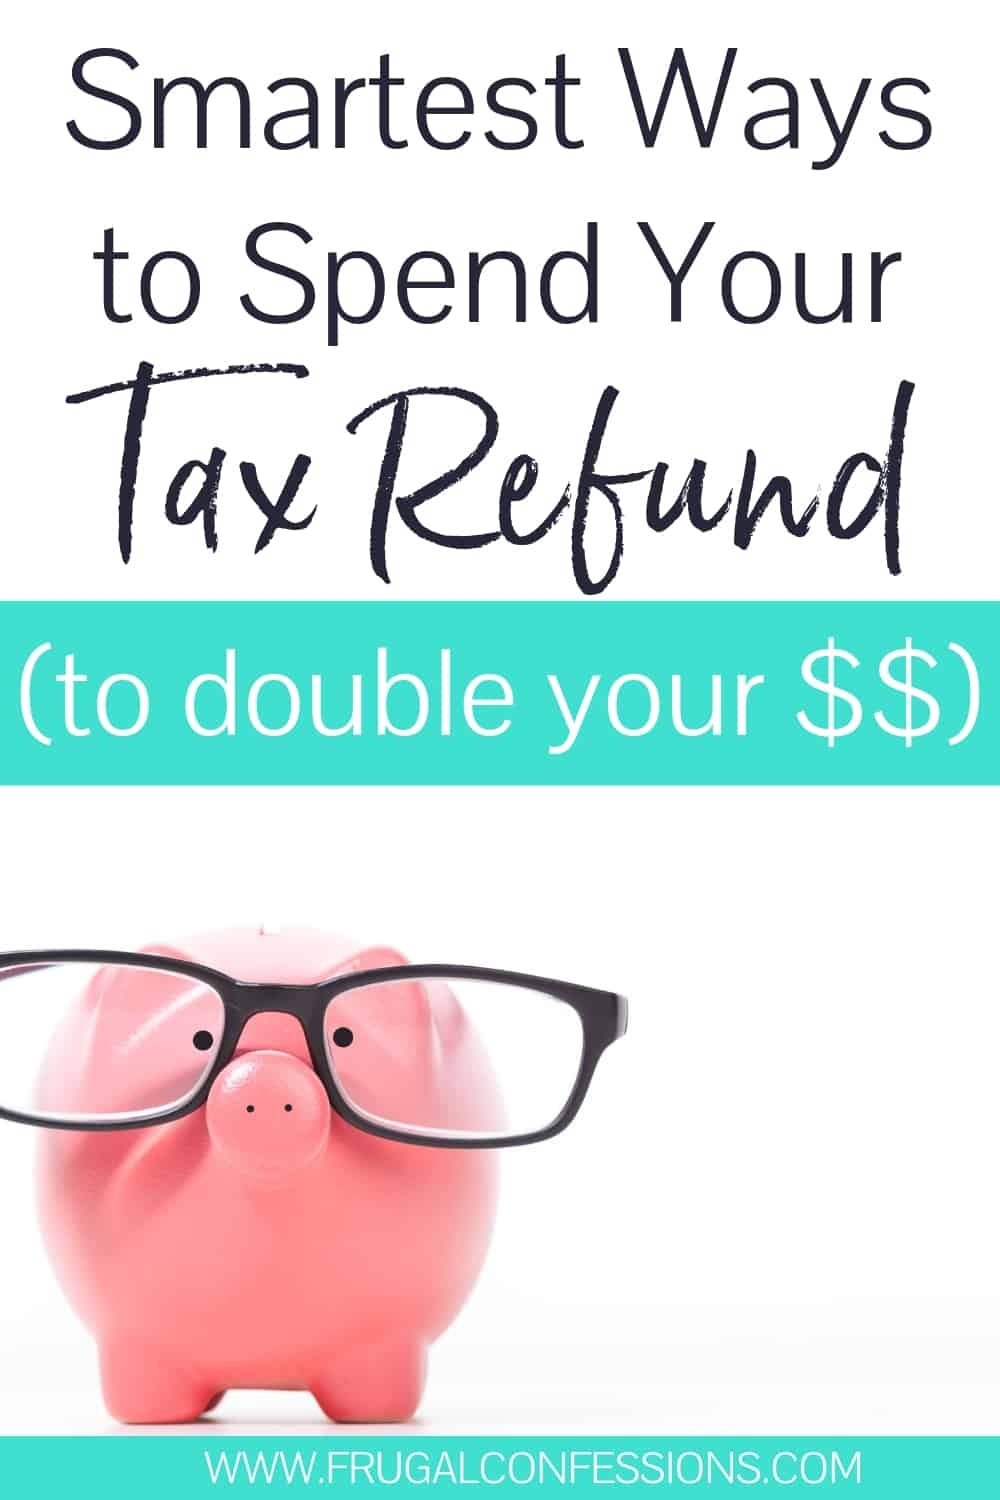 """pink piggy bank with black glasses with text overlay """"smartest ways to spend your tax refund to double your money"""""""